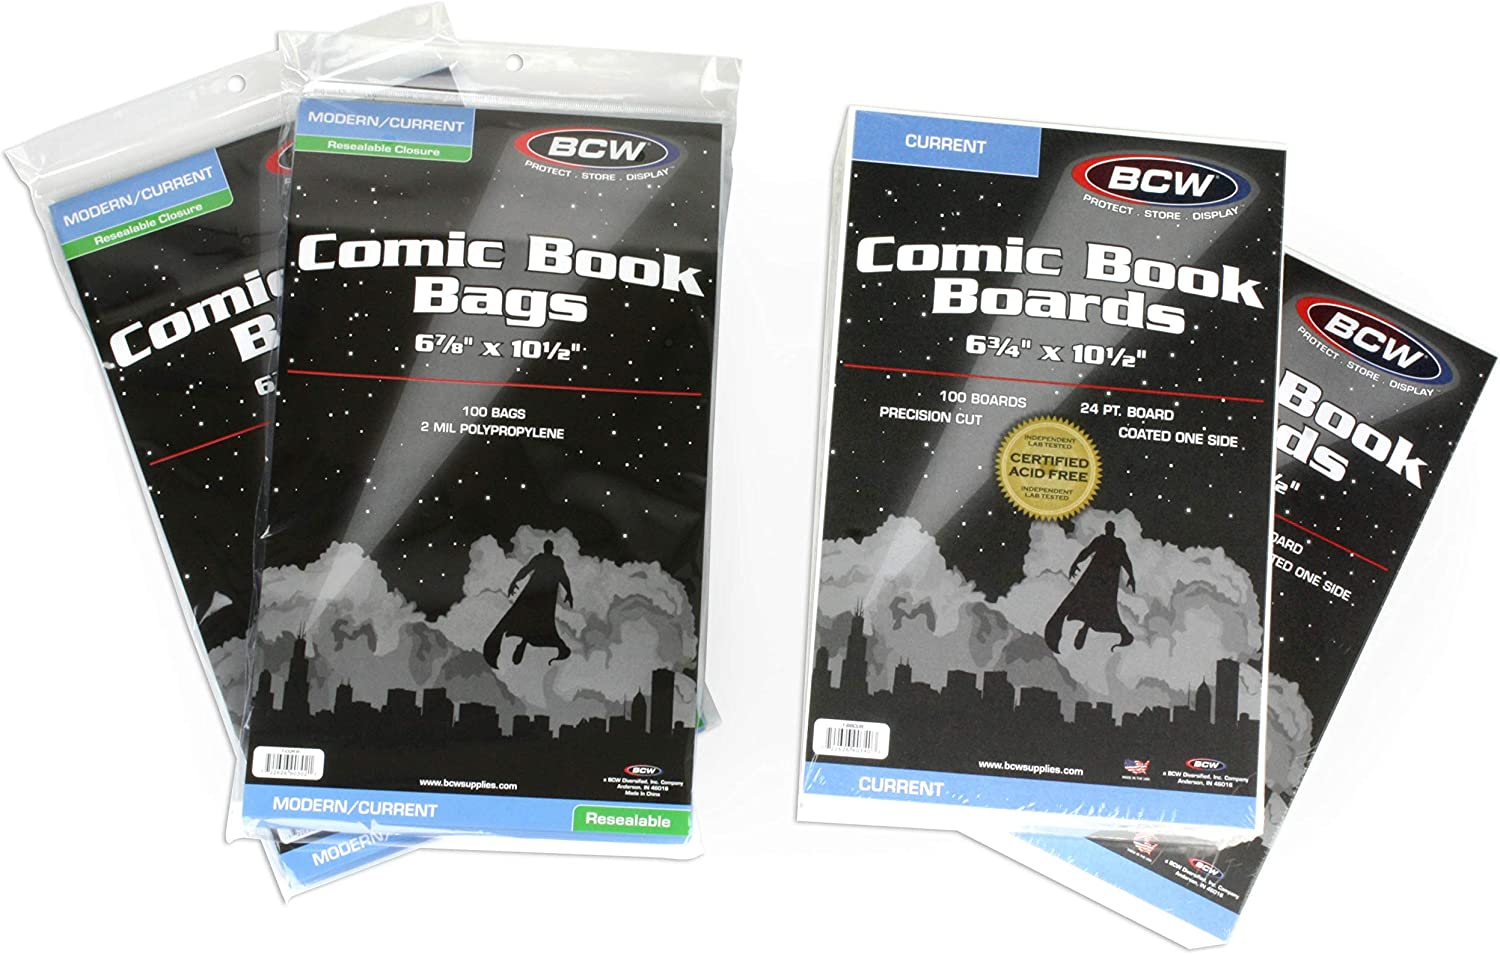 BCW Comic Book Bags and Boards Kit Resealable Bags Backing Boards and Cleaning Cloth Dividers